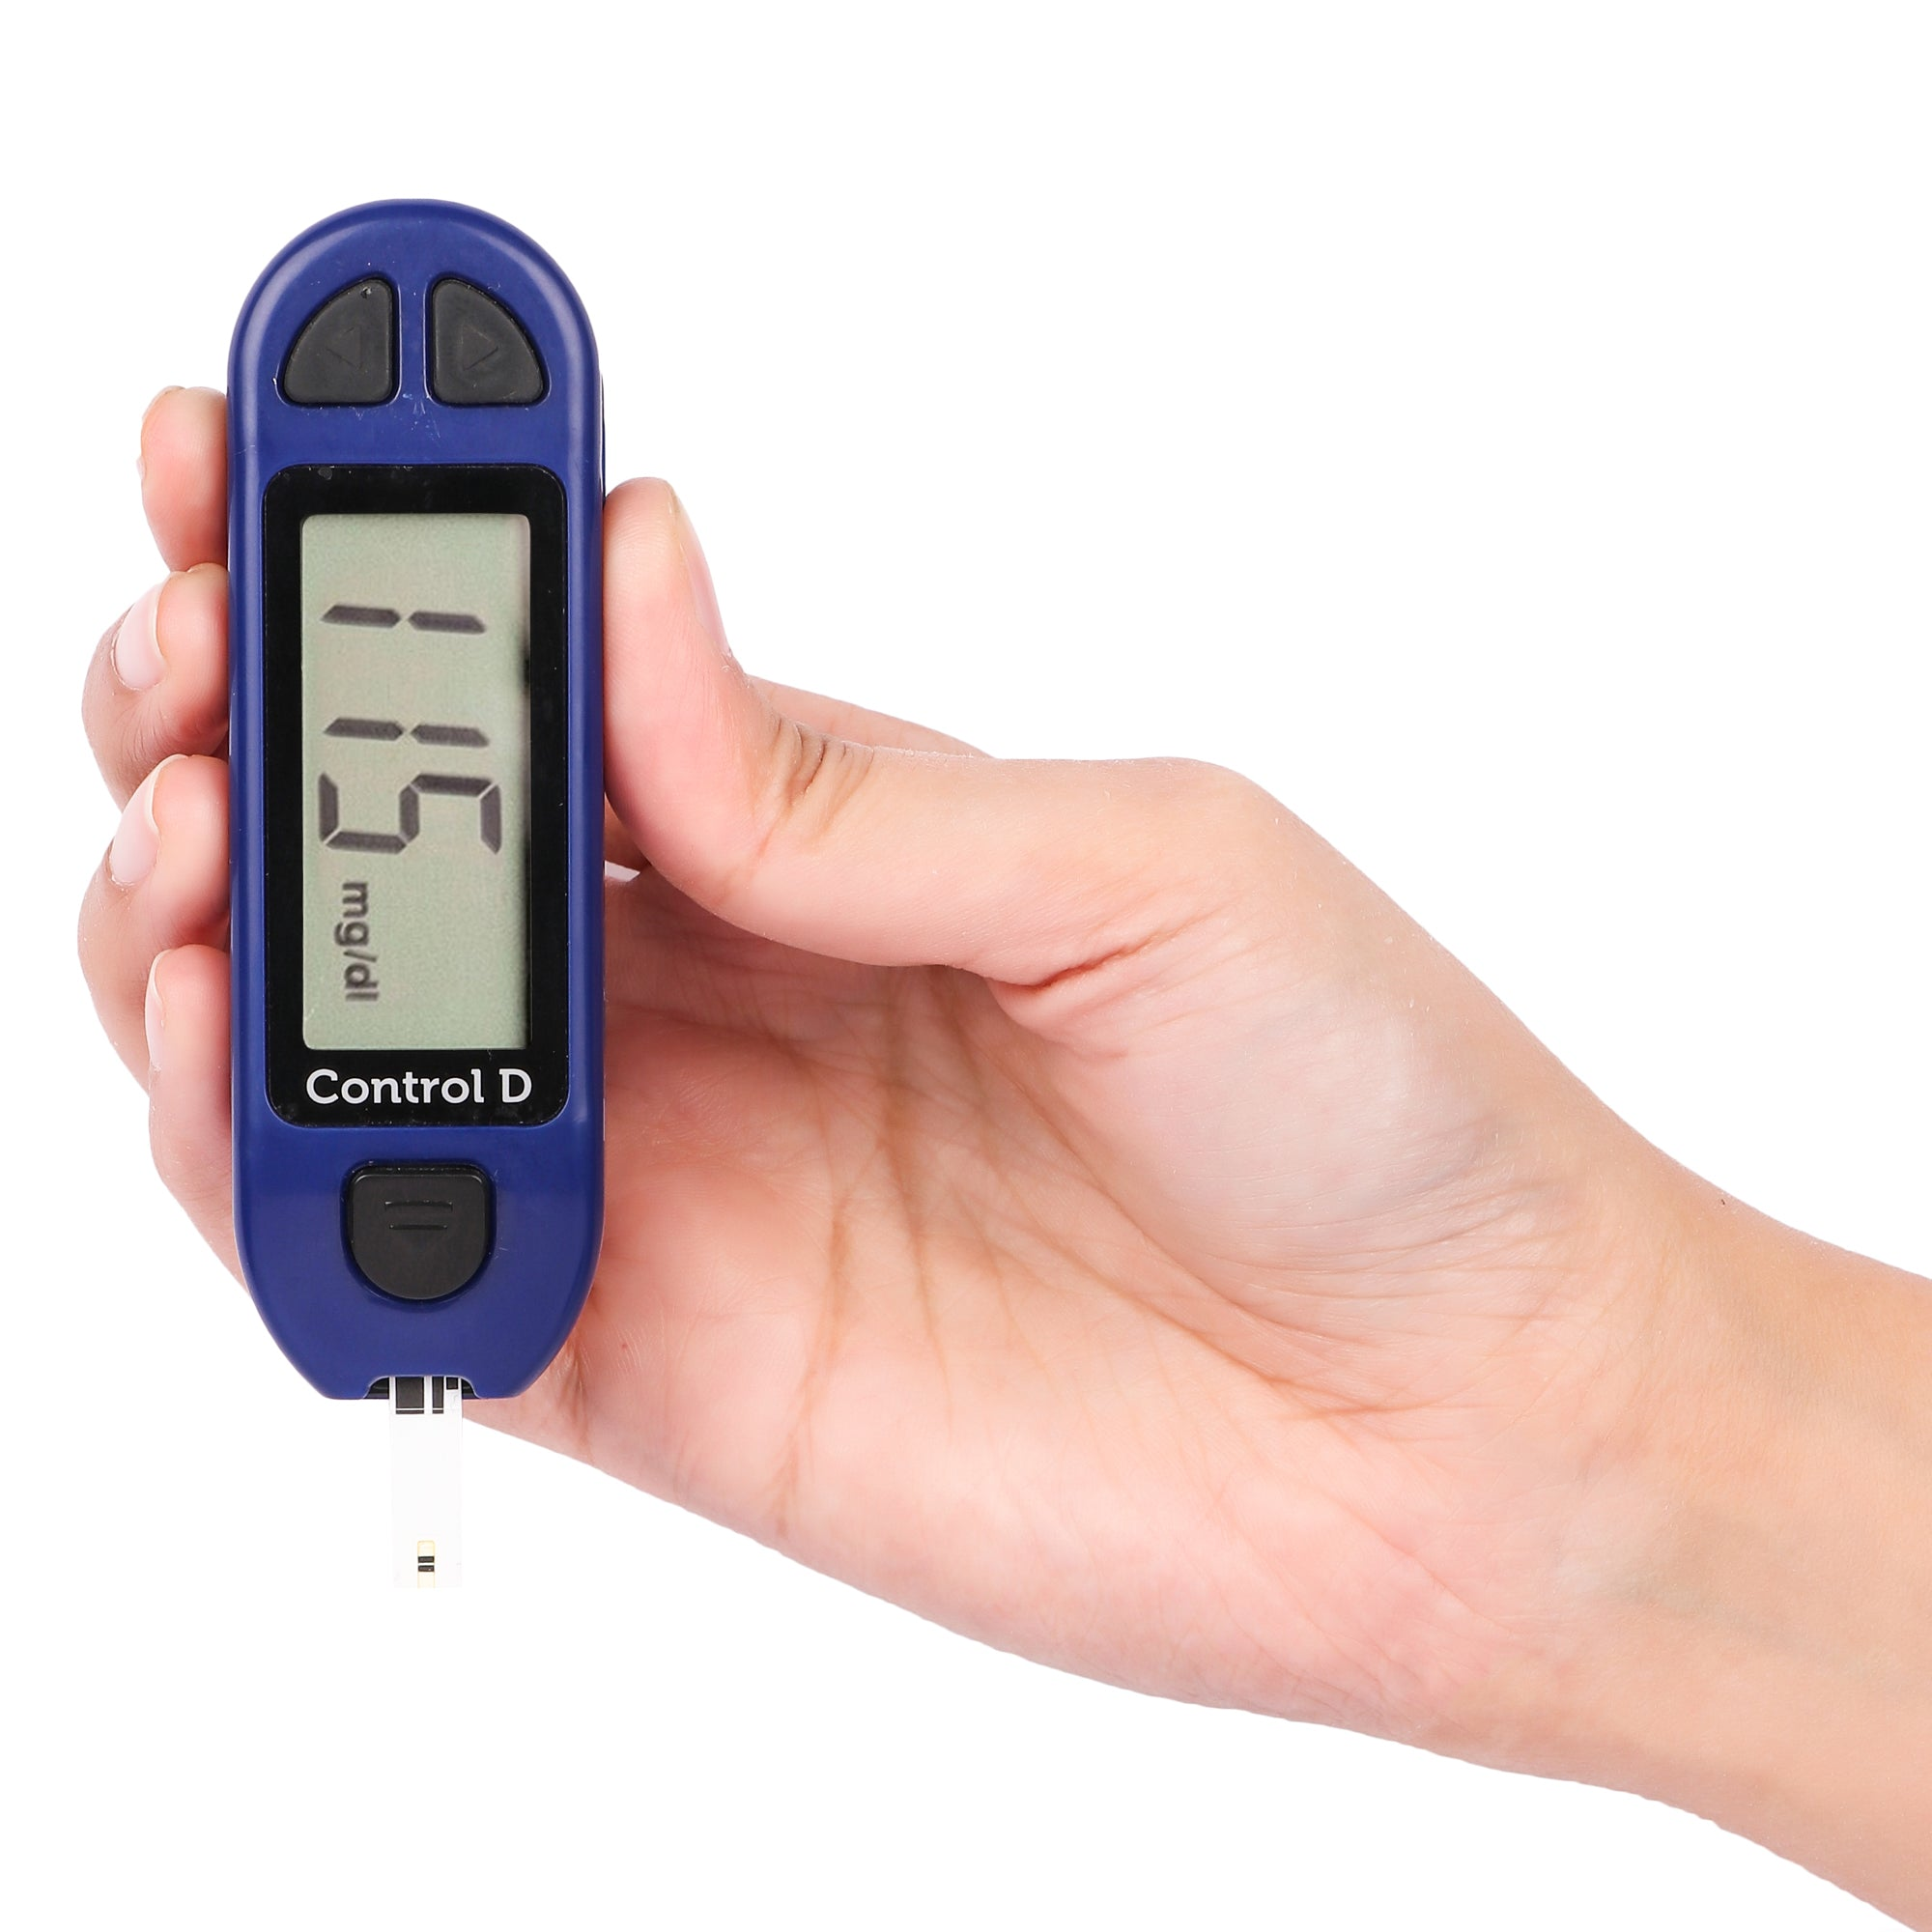 Control D Blue Digital Glucose Blood Sugar testing Monitor Machine